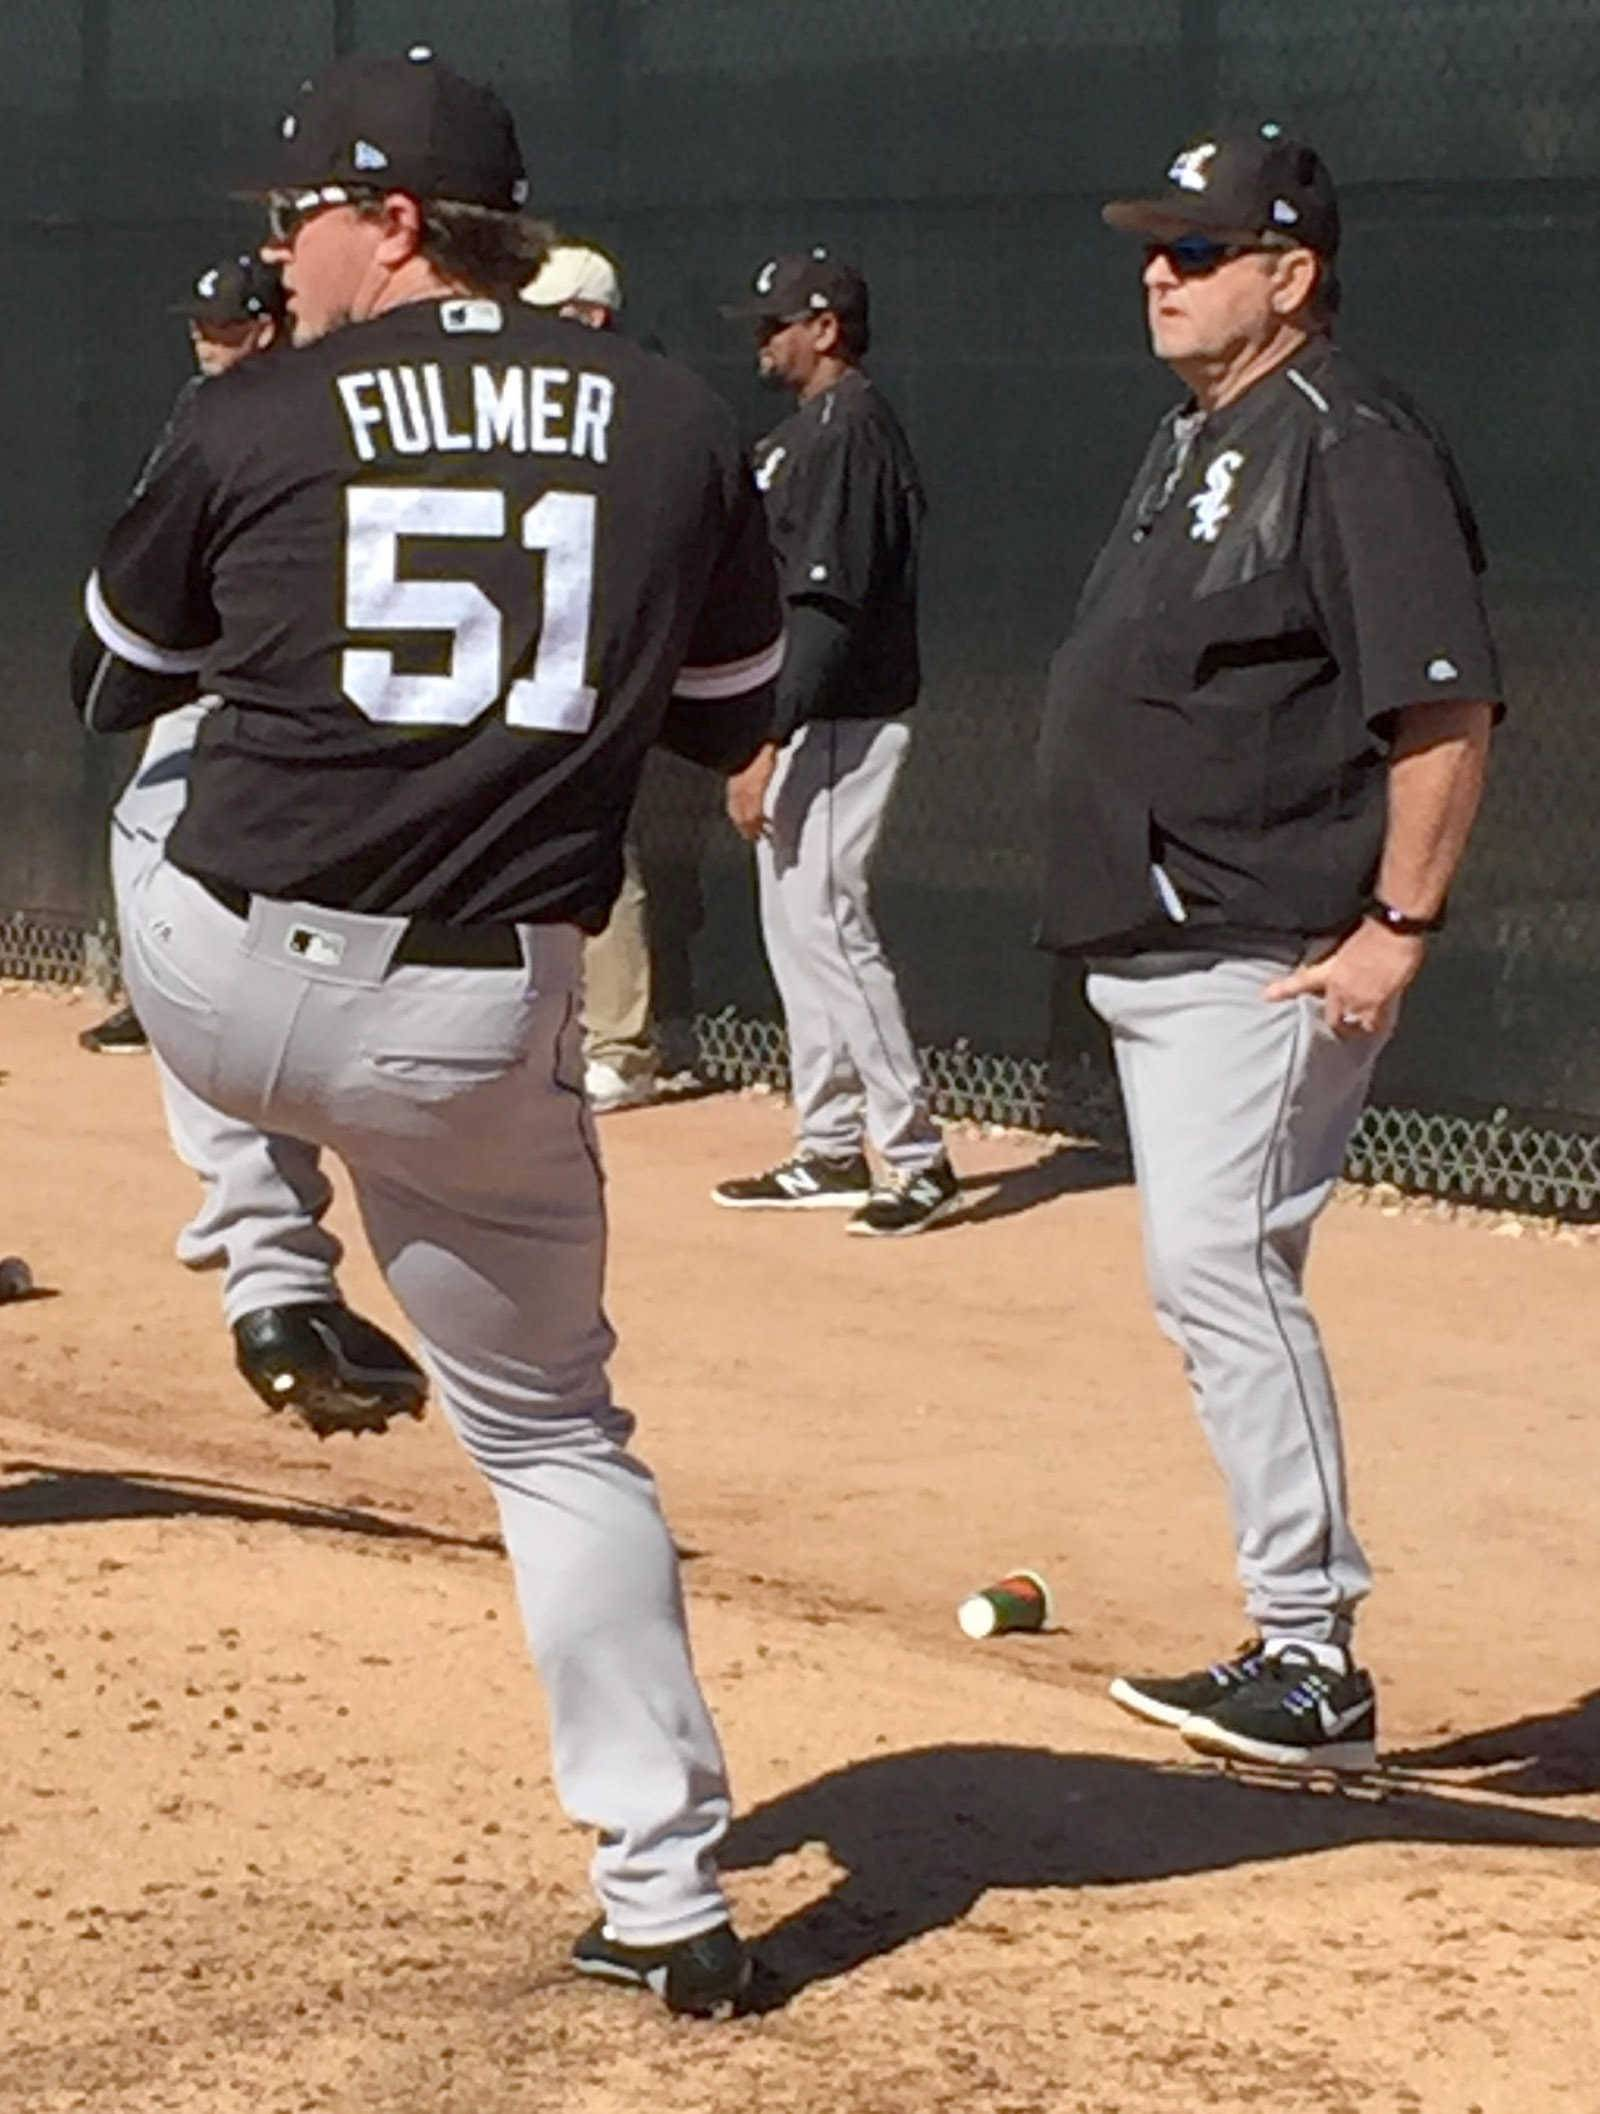 After a rough patch, Fulmer seeking another shot with White Sox